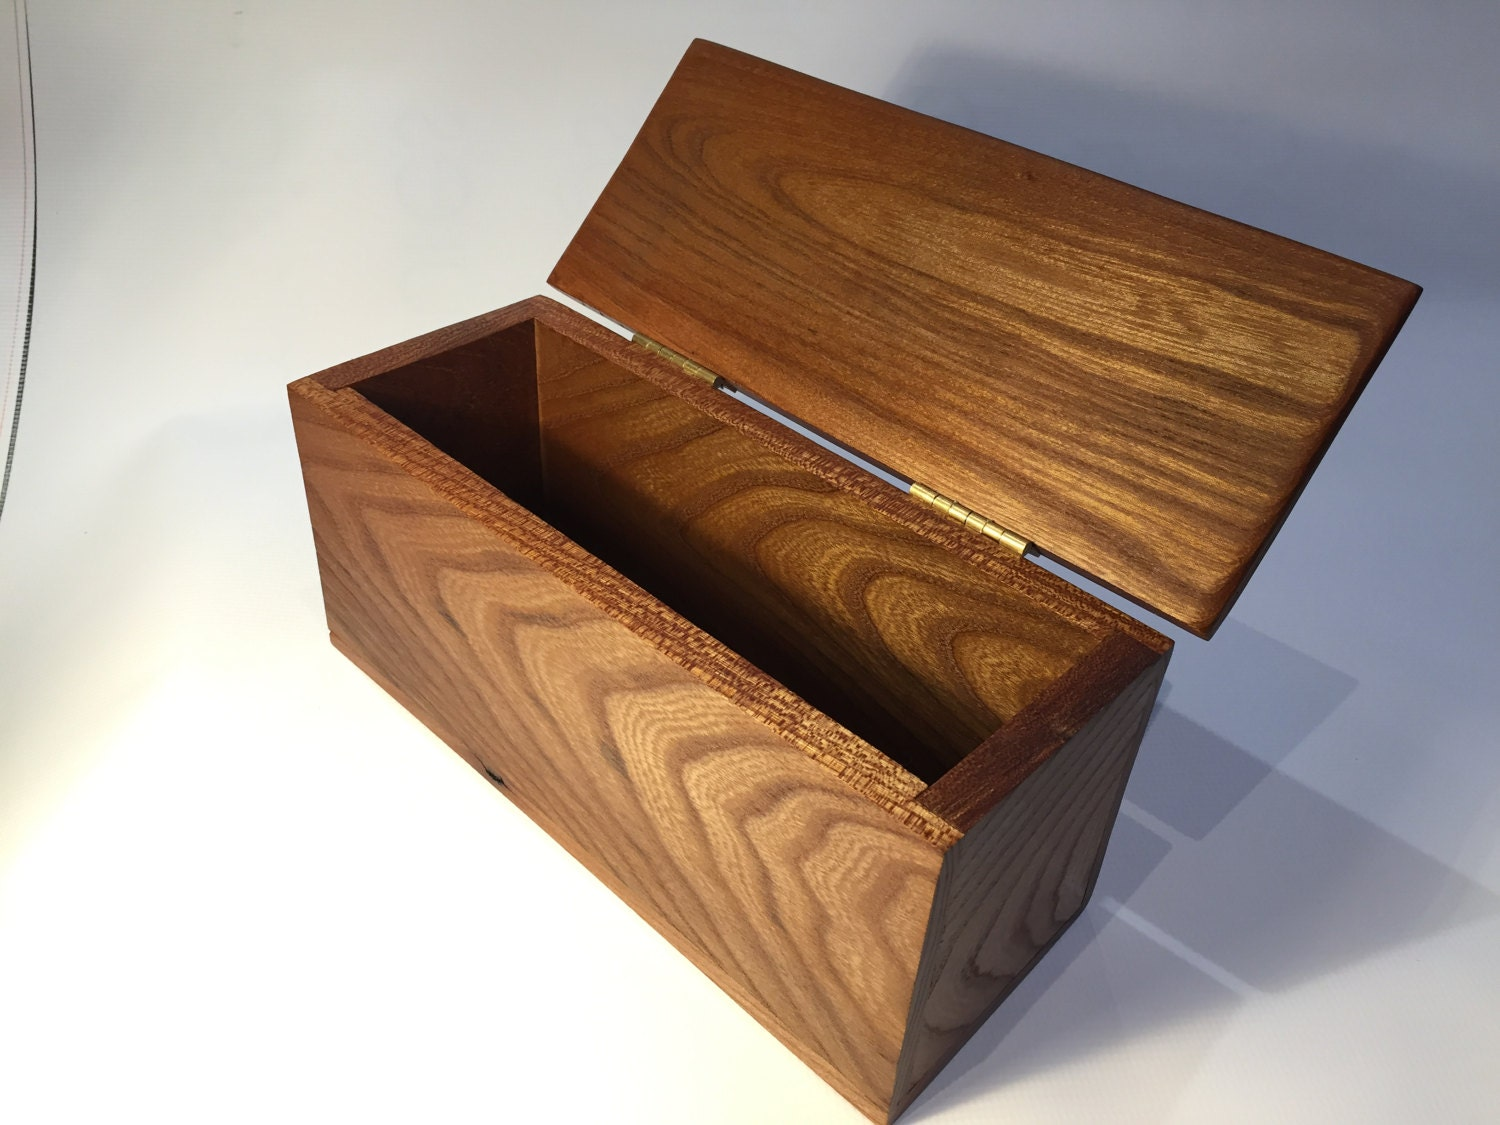 Handmade Cornish Elm Simple Wooden Keepsake Trinket Jewellery Box with hinged lid and live edge wood  Beautiful Grain Colours and Patterns